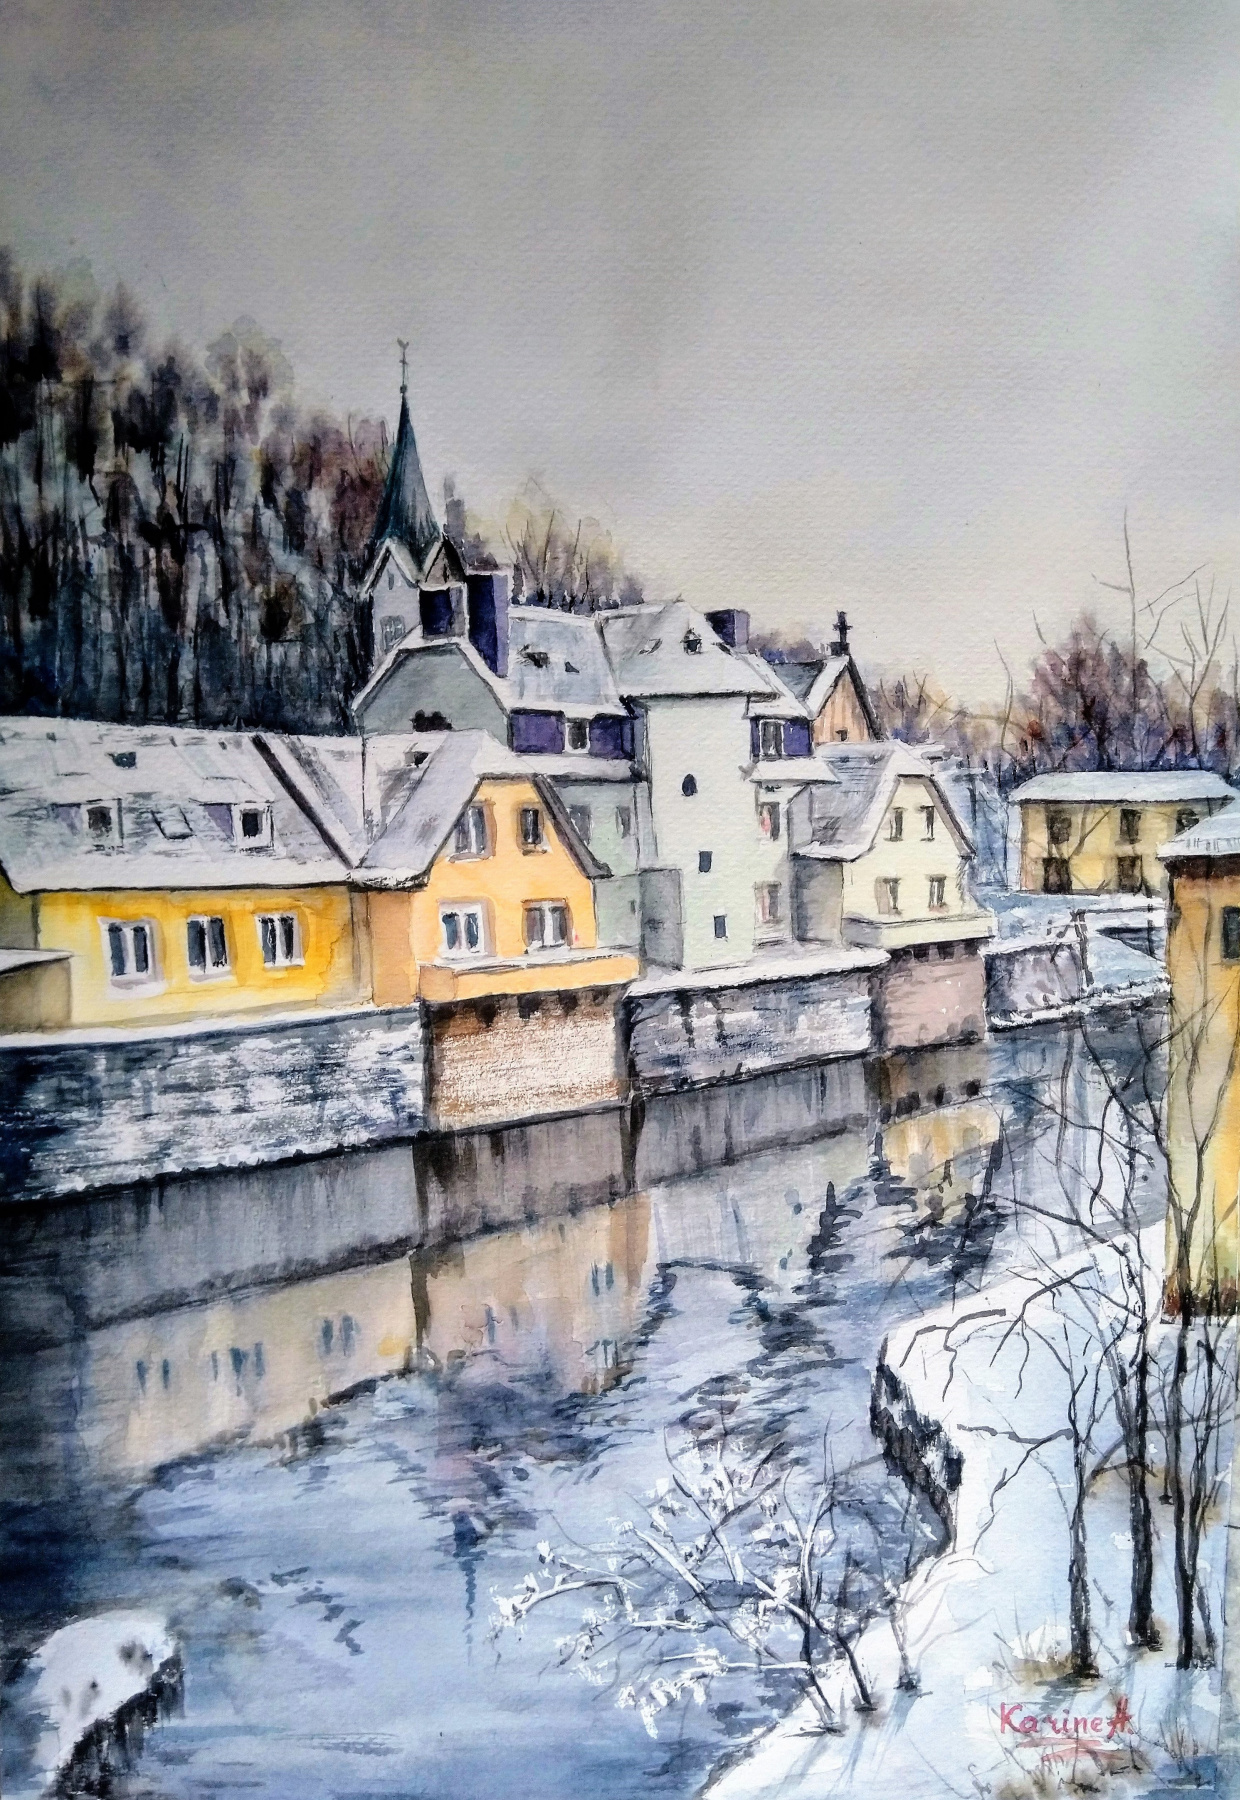 Karine Andriasyan. Cozy winter in Luxembourg